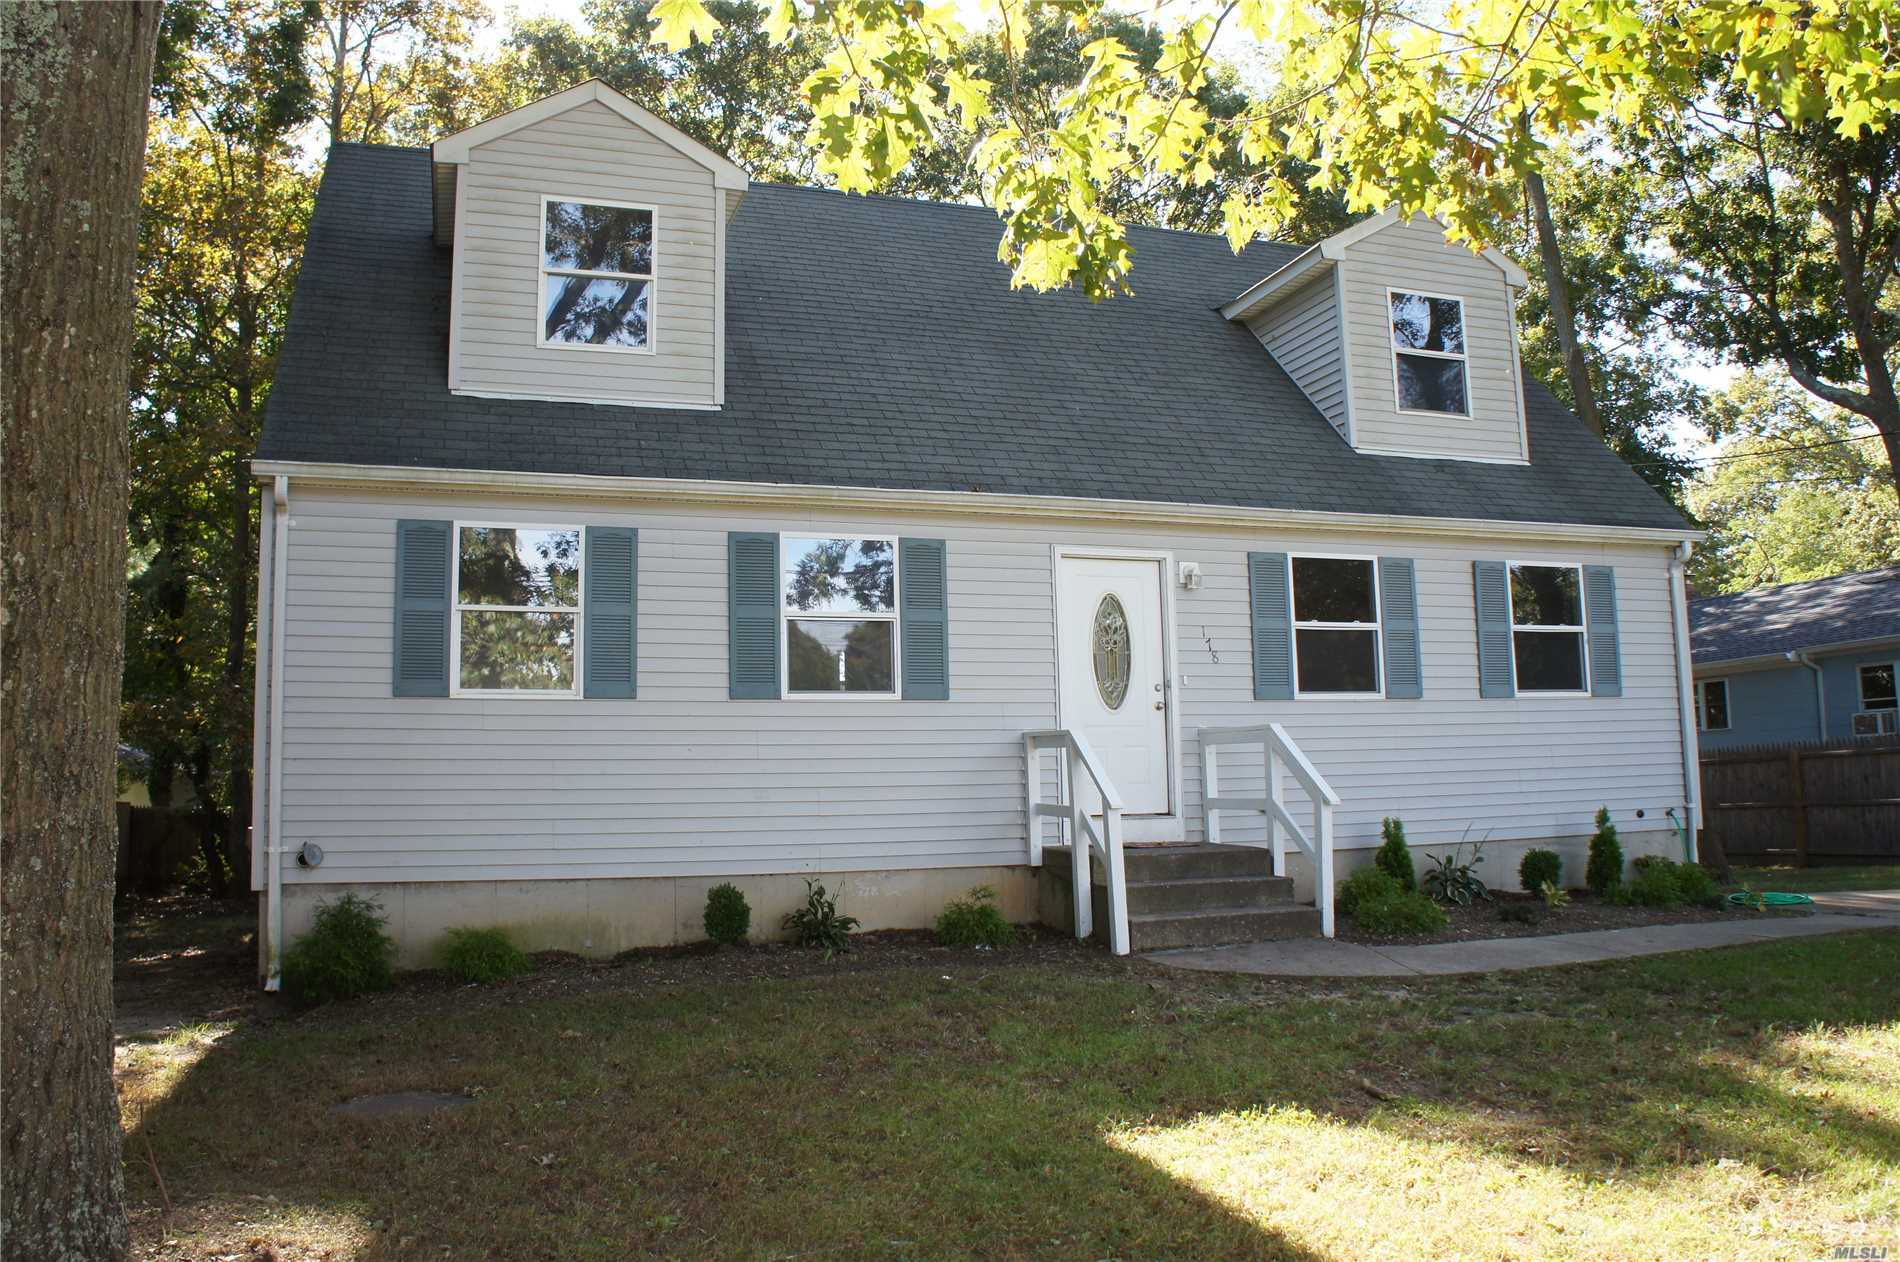 Cape Featuring 4 Large Bedrooms, 2 Updated Full Bathrooms, Large Eik W/Newer Counter Tops And Cabinets, Newer Floors, Kitchen Counter Tops And Cabinets, Newer Flooring Throughout. Large Basement W/High Ceilings. Burner Only 2 Years Young! Endless Possibilities! Close To All. Close To Fishing, Boating, Beaches, Parks, Shopping And Transportation.